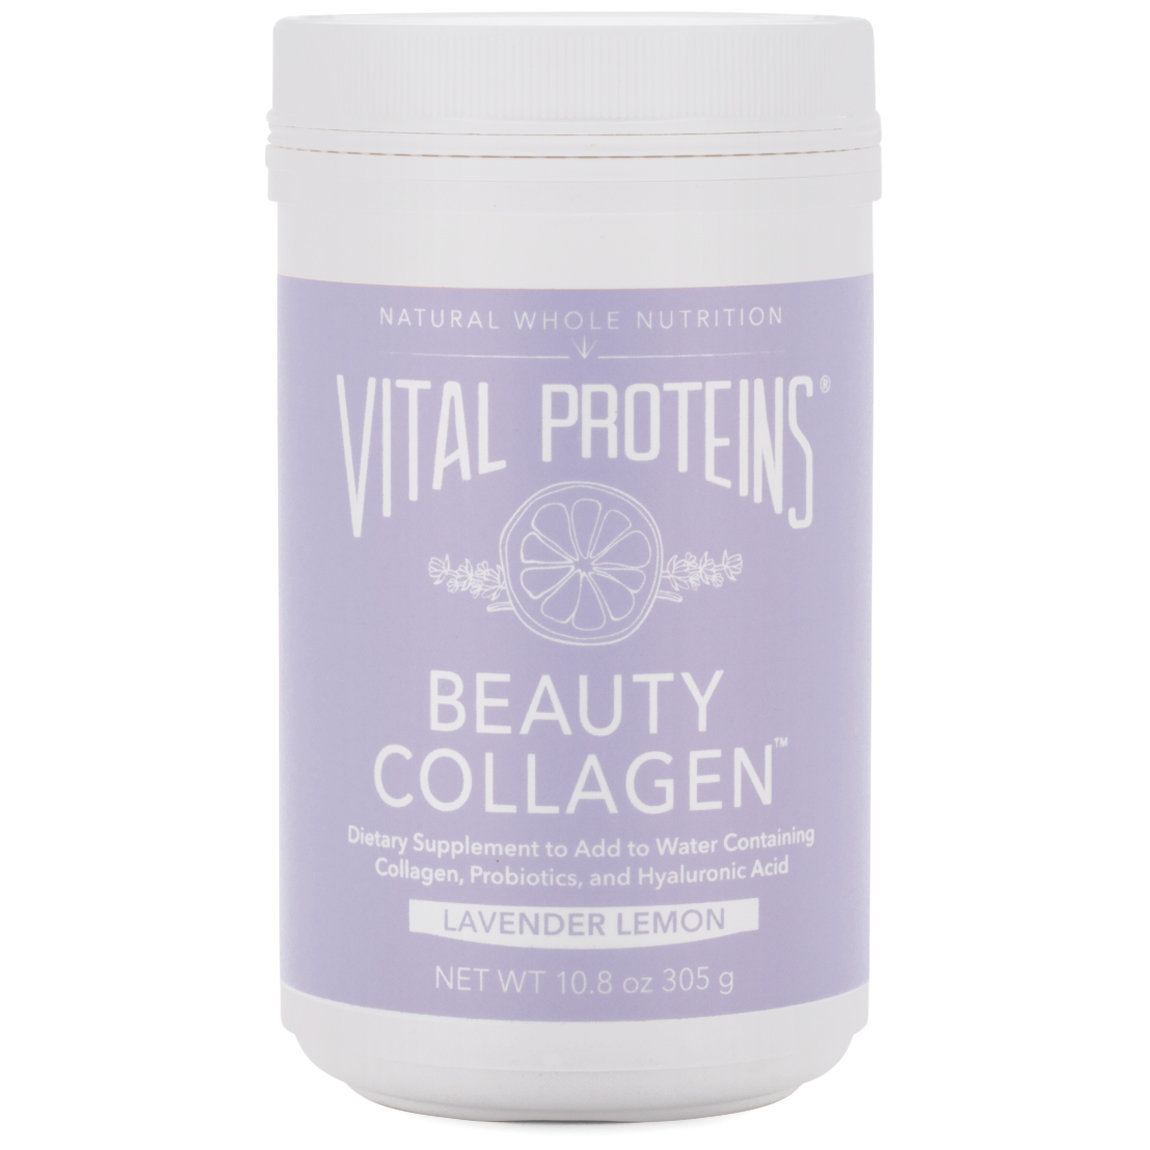 Vital Proteins Beauty Collagen - Lavender Lemon 10.8 oz product swatch.